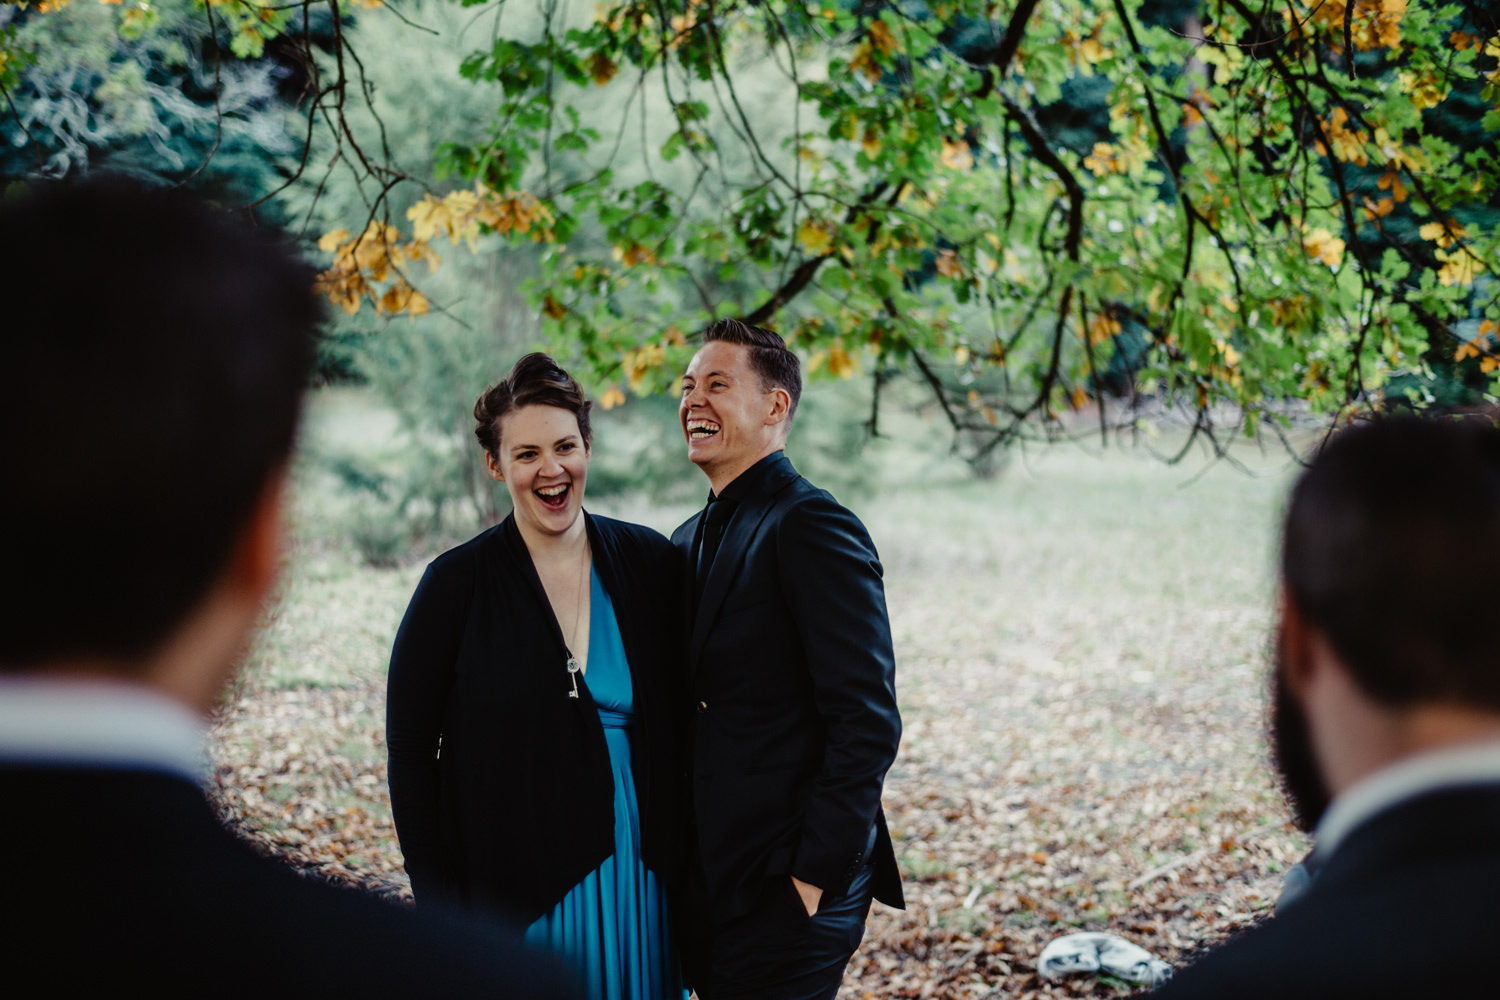 036-redwood-forest-warburton-wedding.jpg